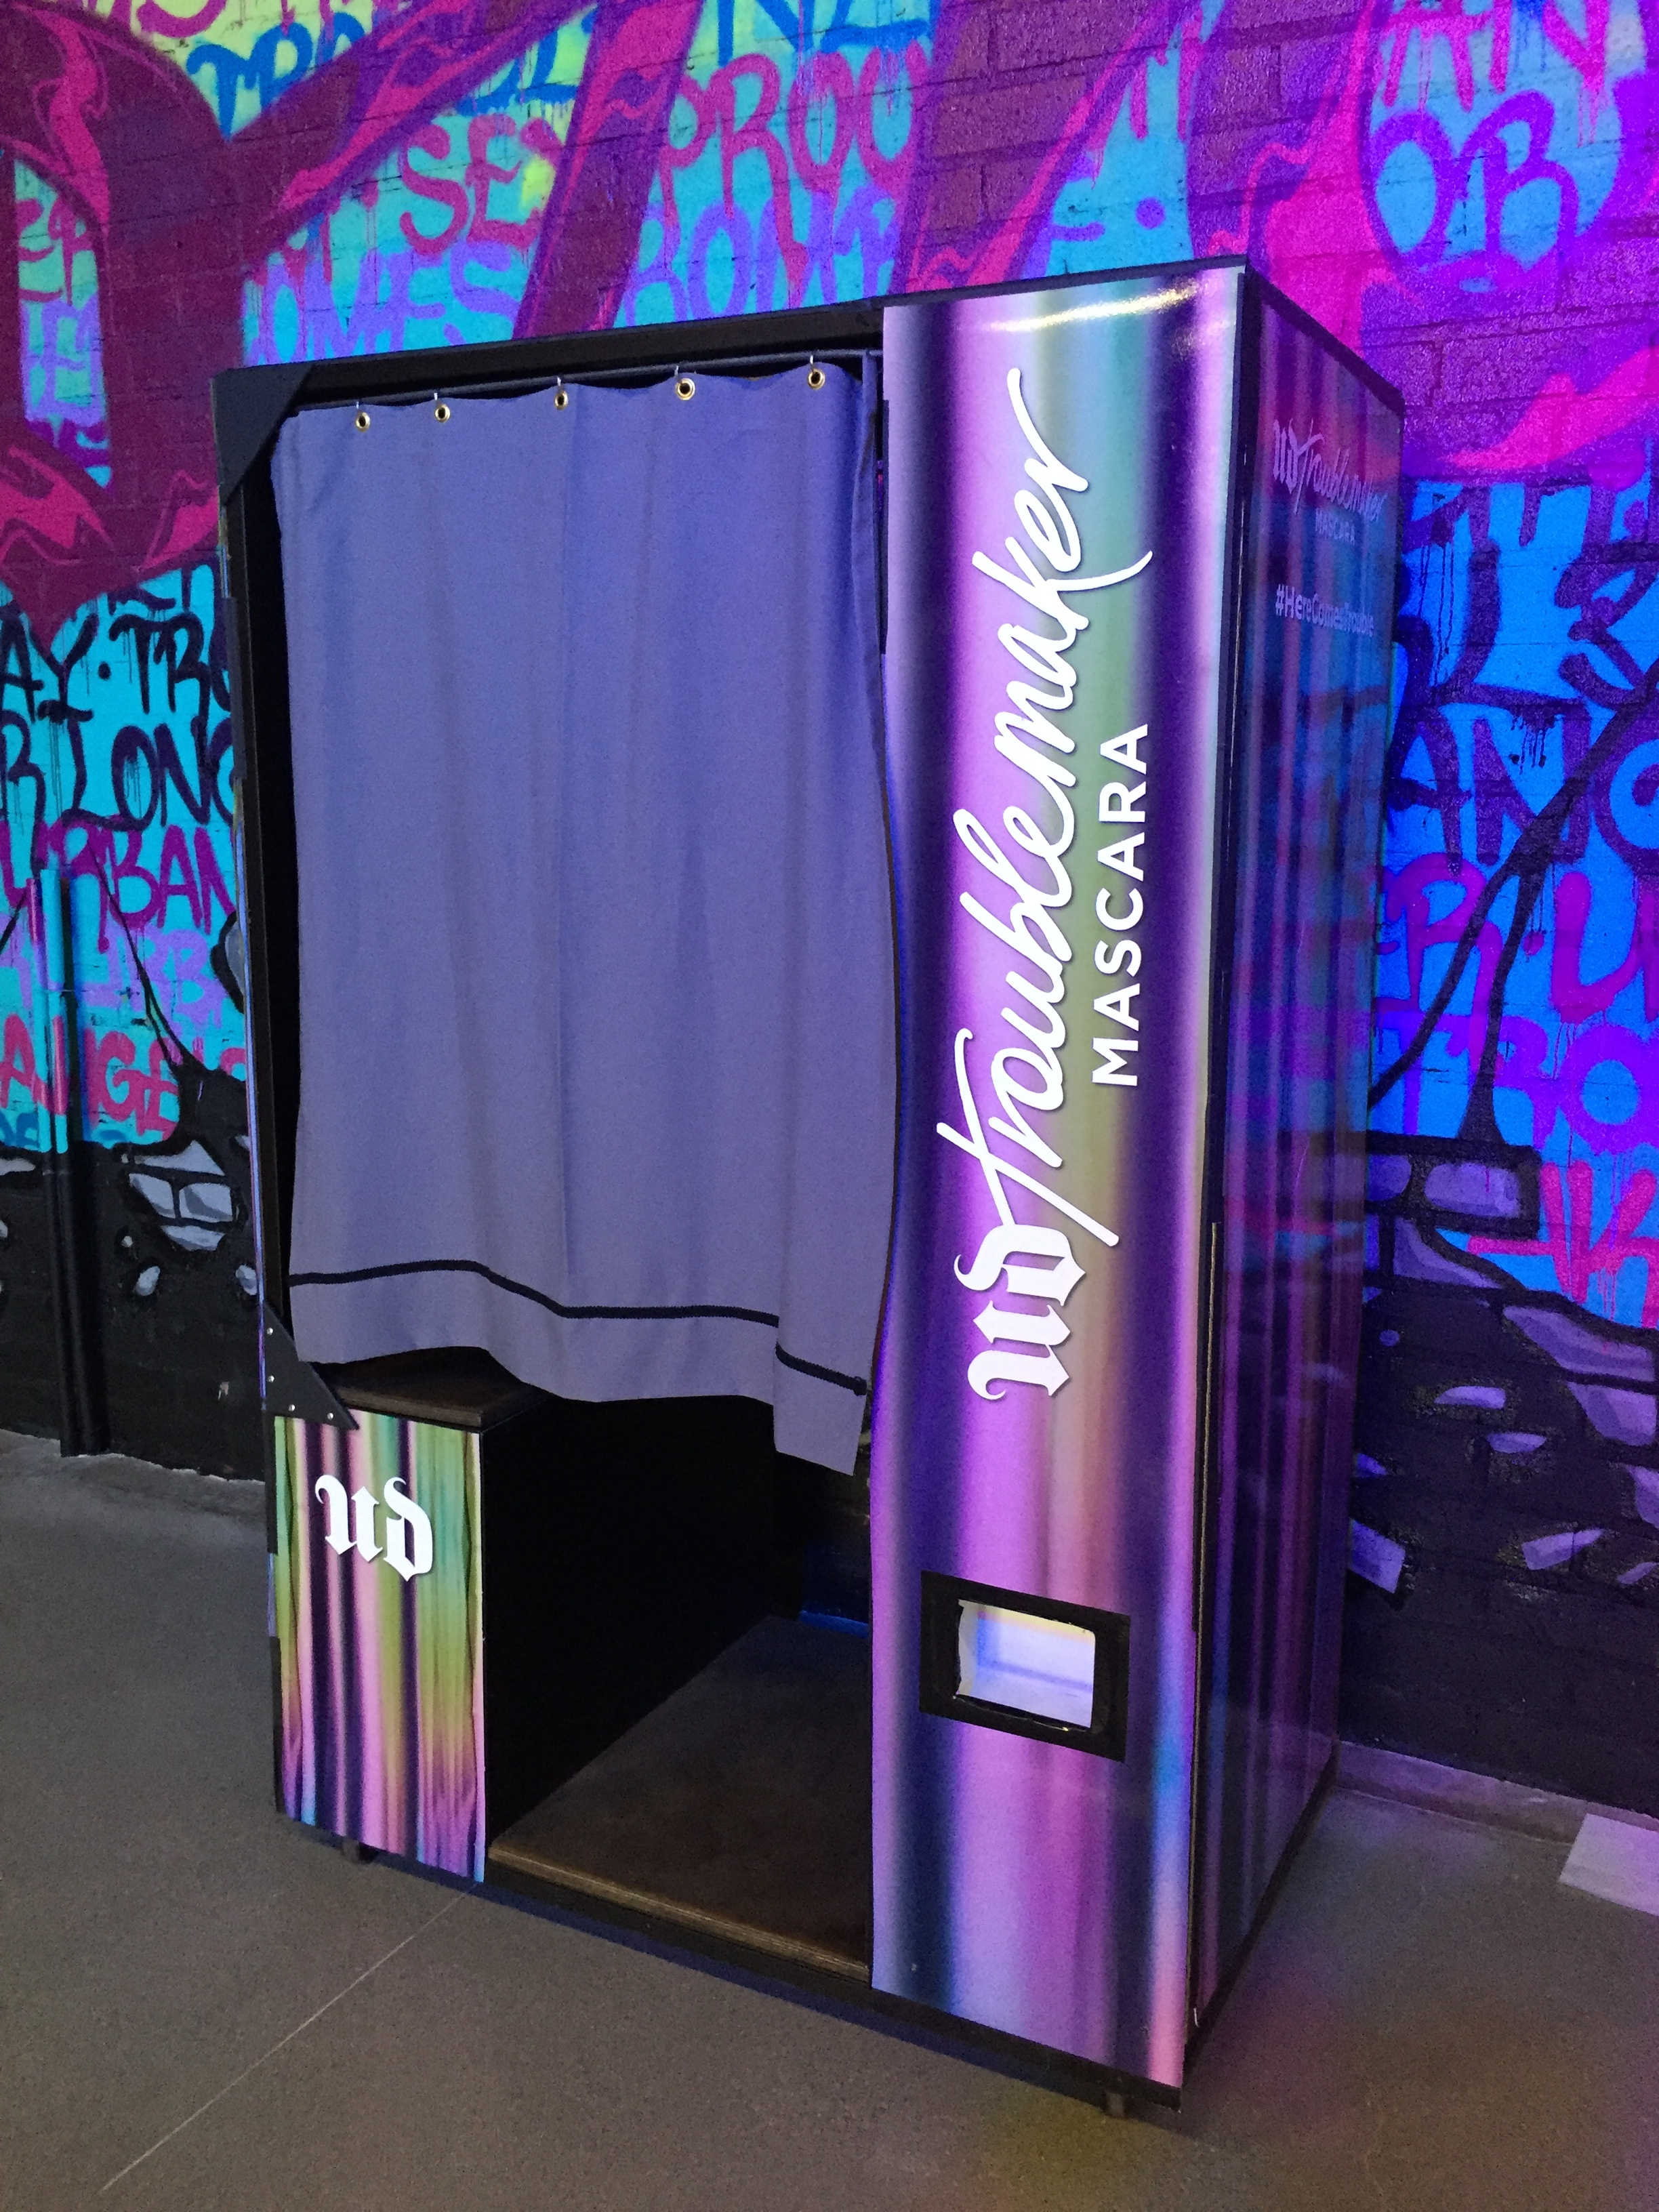 event-marketing-photo-booth-los-angeles.jpg